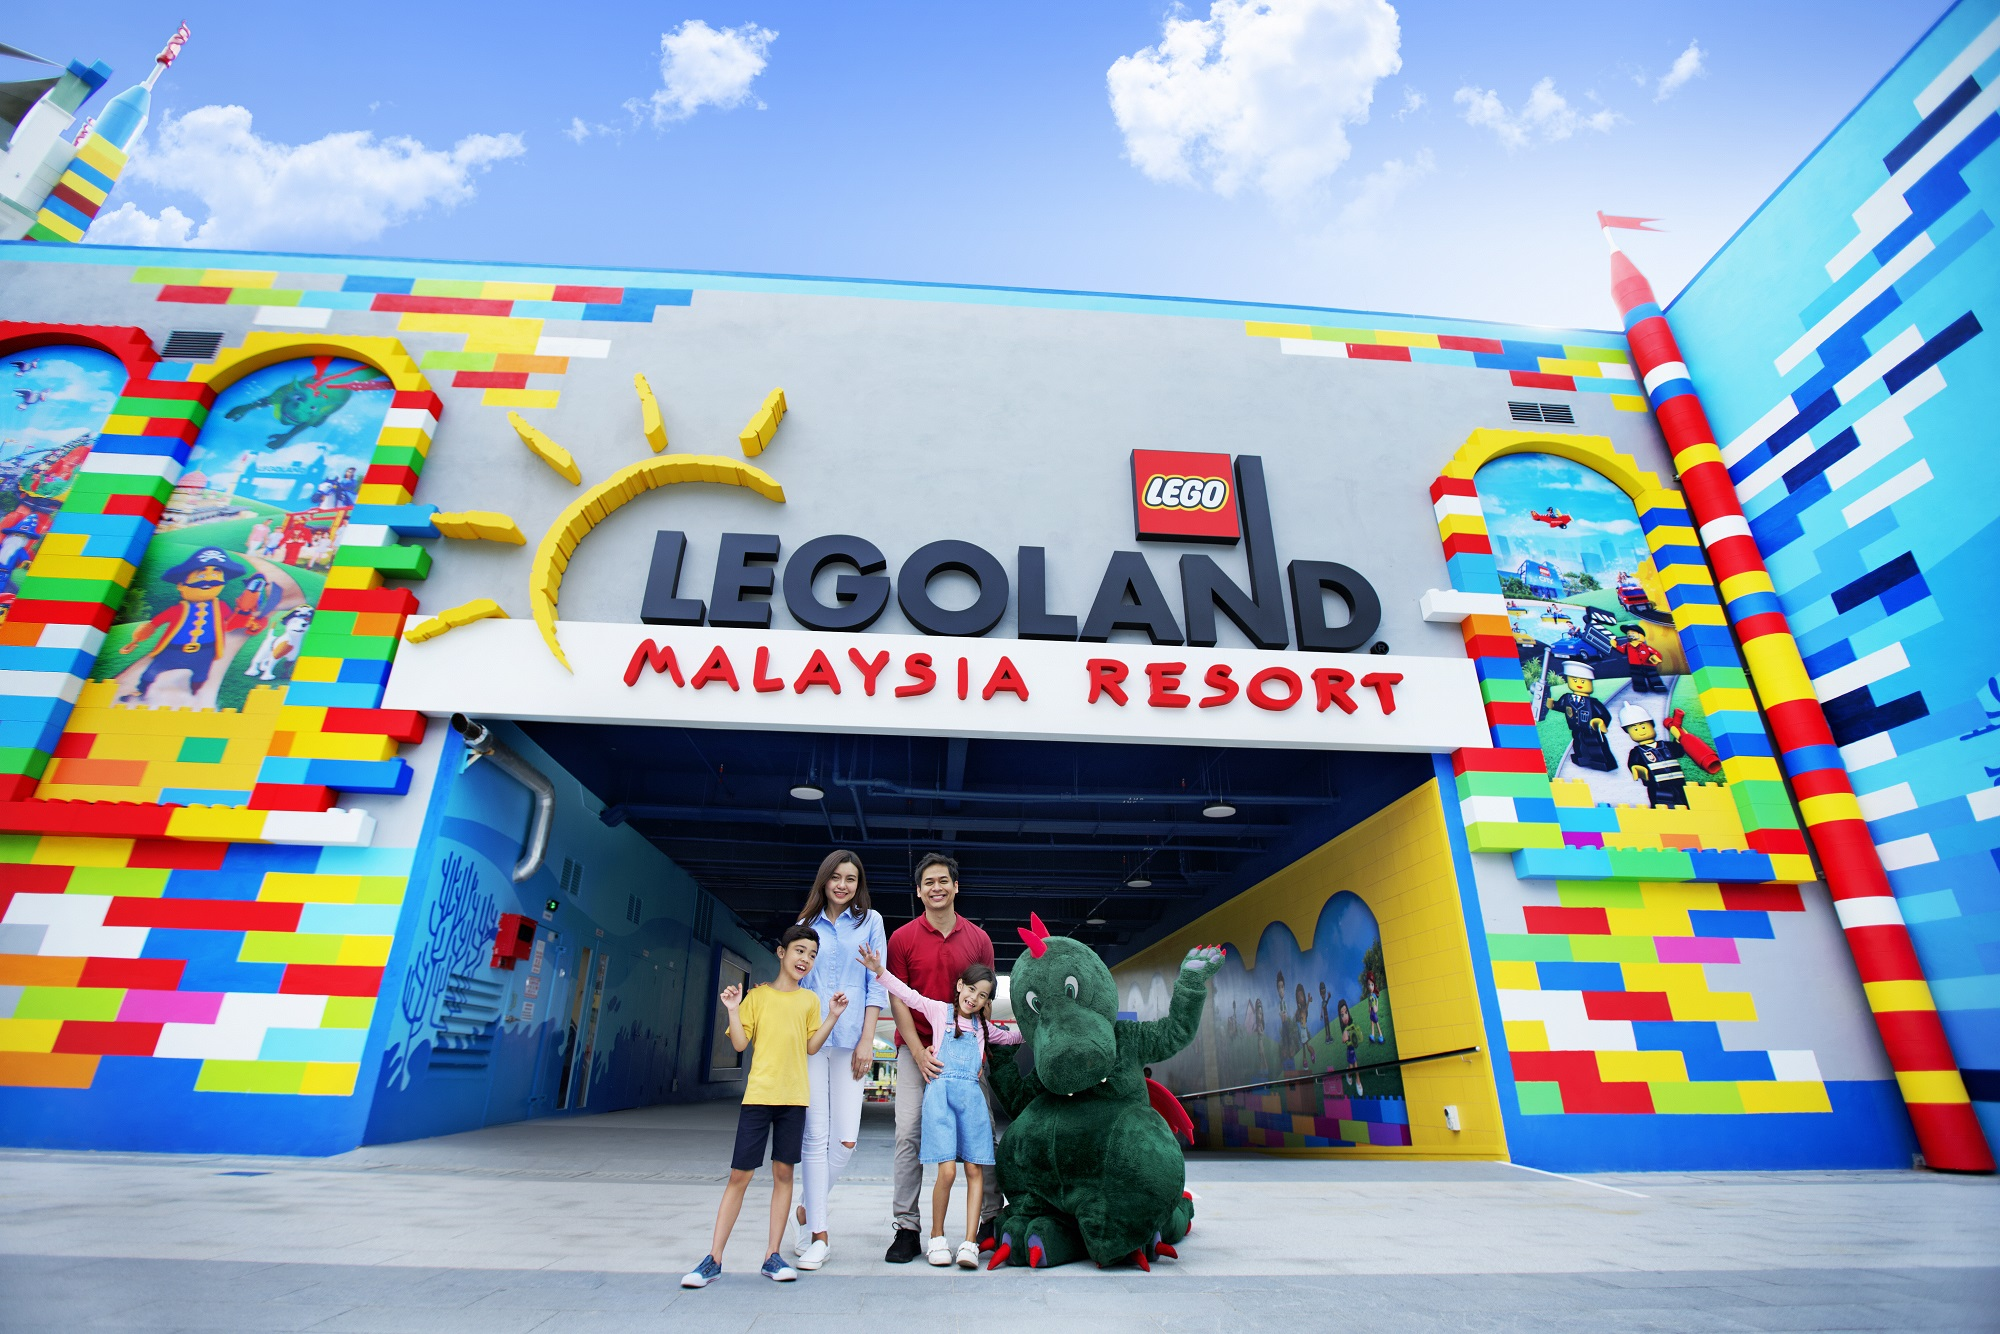 [REVISED] Legoland M'sia Has A New Aquarium, VR Roller Coaster & Pirate-Themed Rooms For School Break Staycays resort